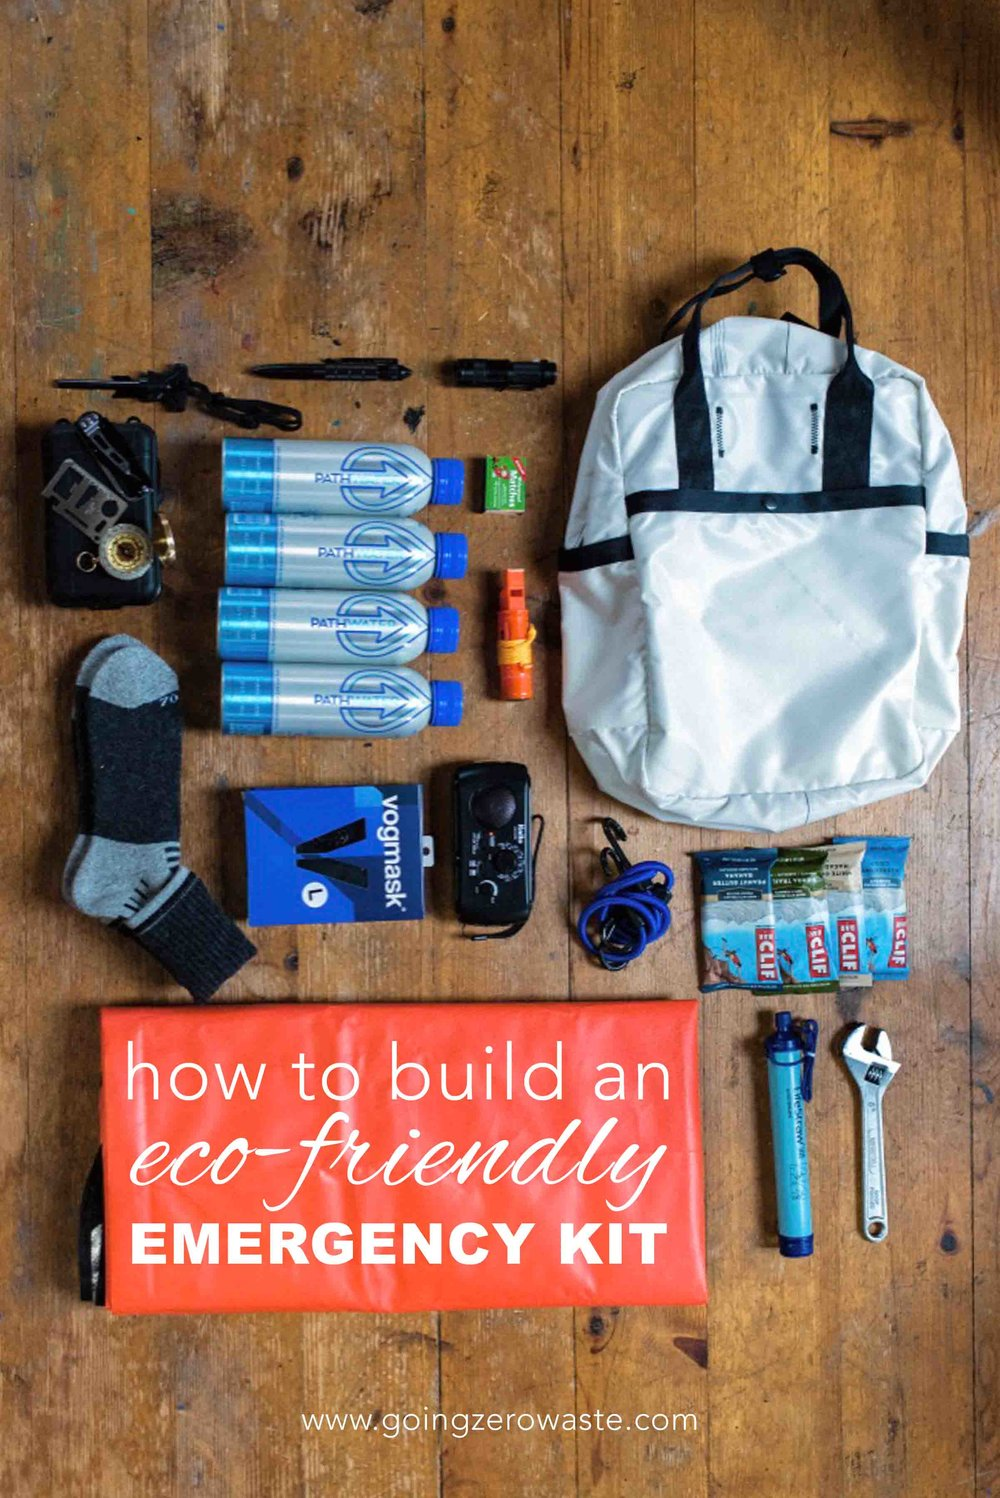 How to build an eco friendly emergency kit from www.goingzerowaste.com #emergencykit #emergency #zerowaste #ecofriendly #beprepared